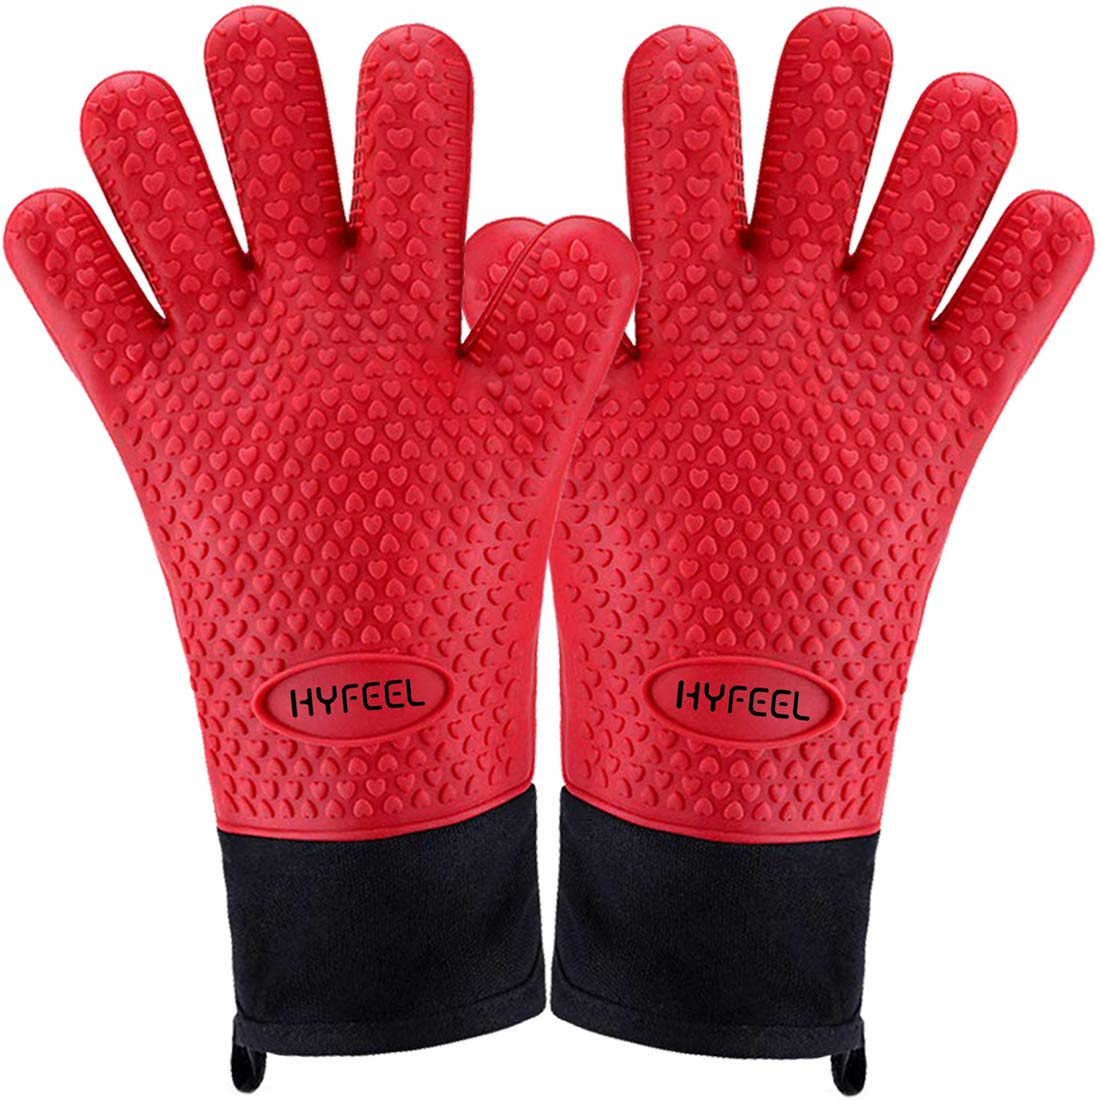 HYFEEL Oven Mitts Long Silicone Heat Resistant BBQ Grilling Gloves Lined with Fingers for Frying Baking Barbeque Cooking Smoker Red Kitchen Accessories 1Pair